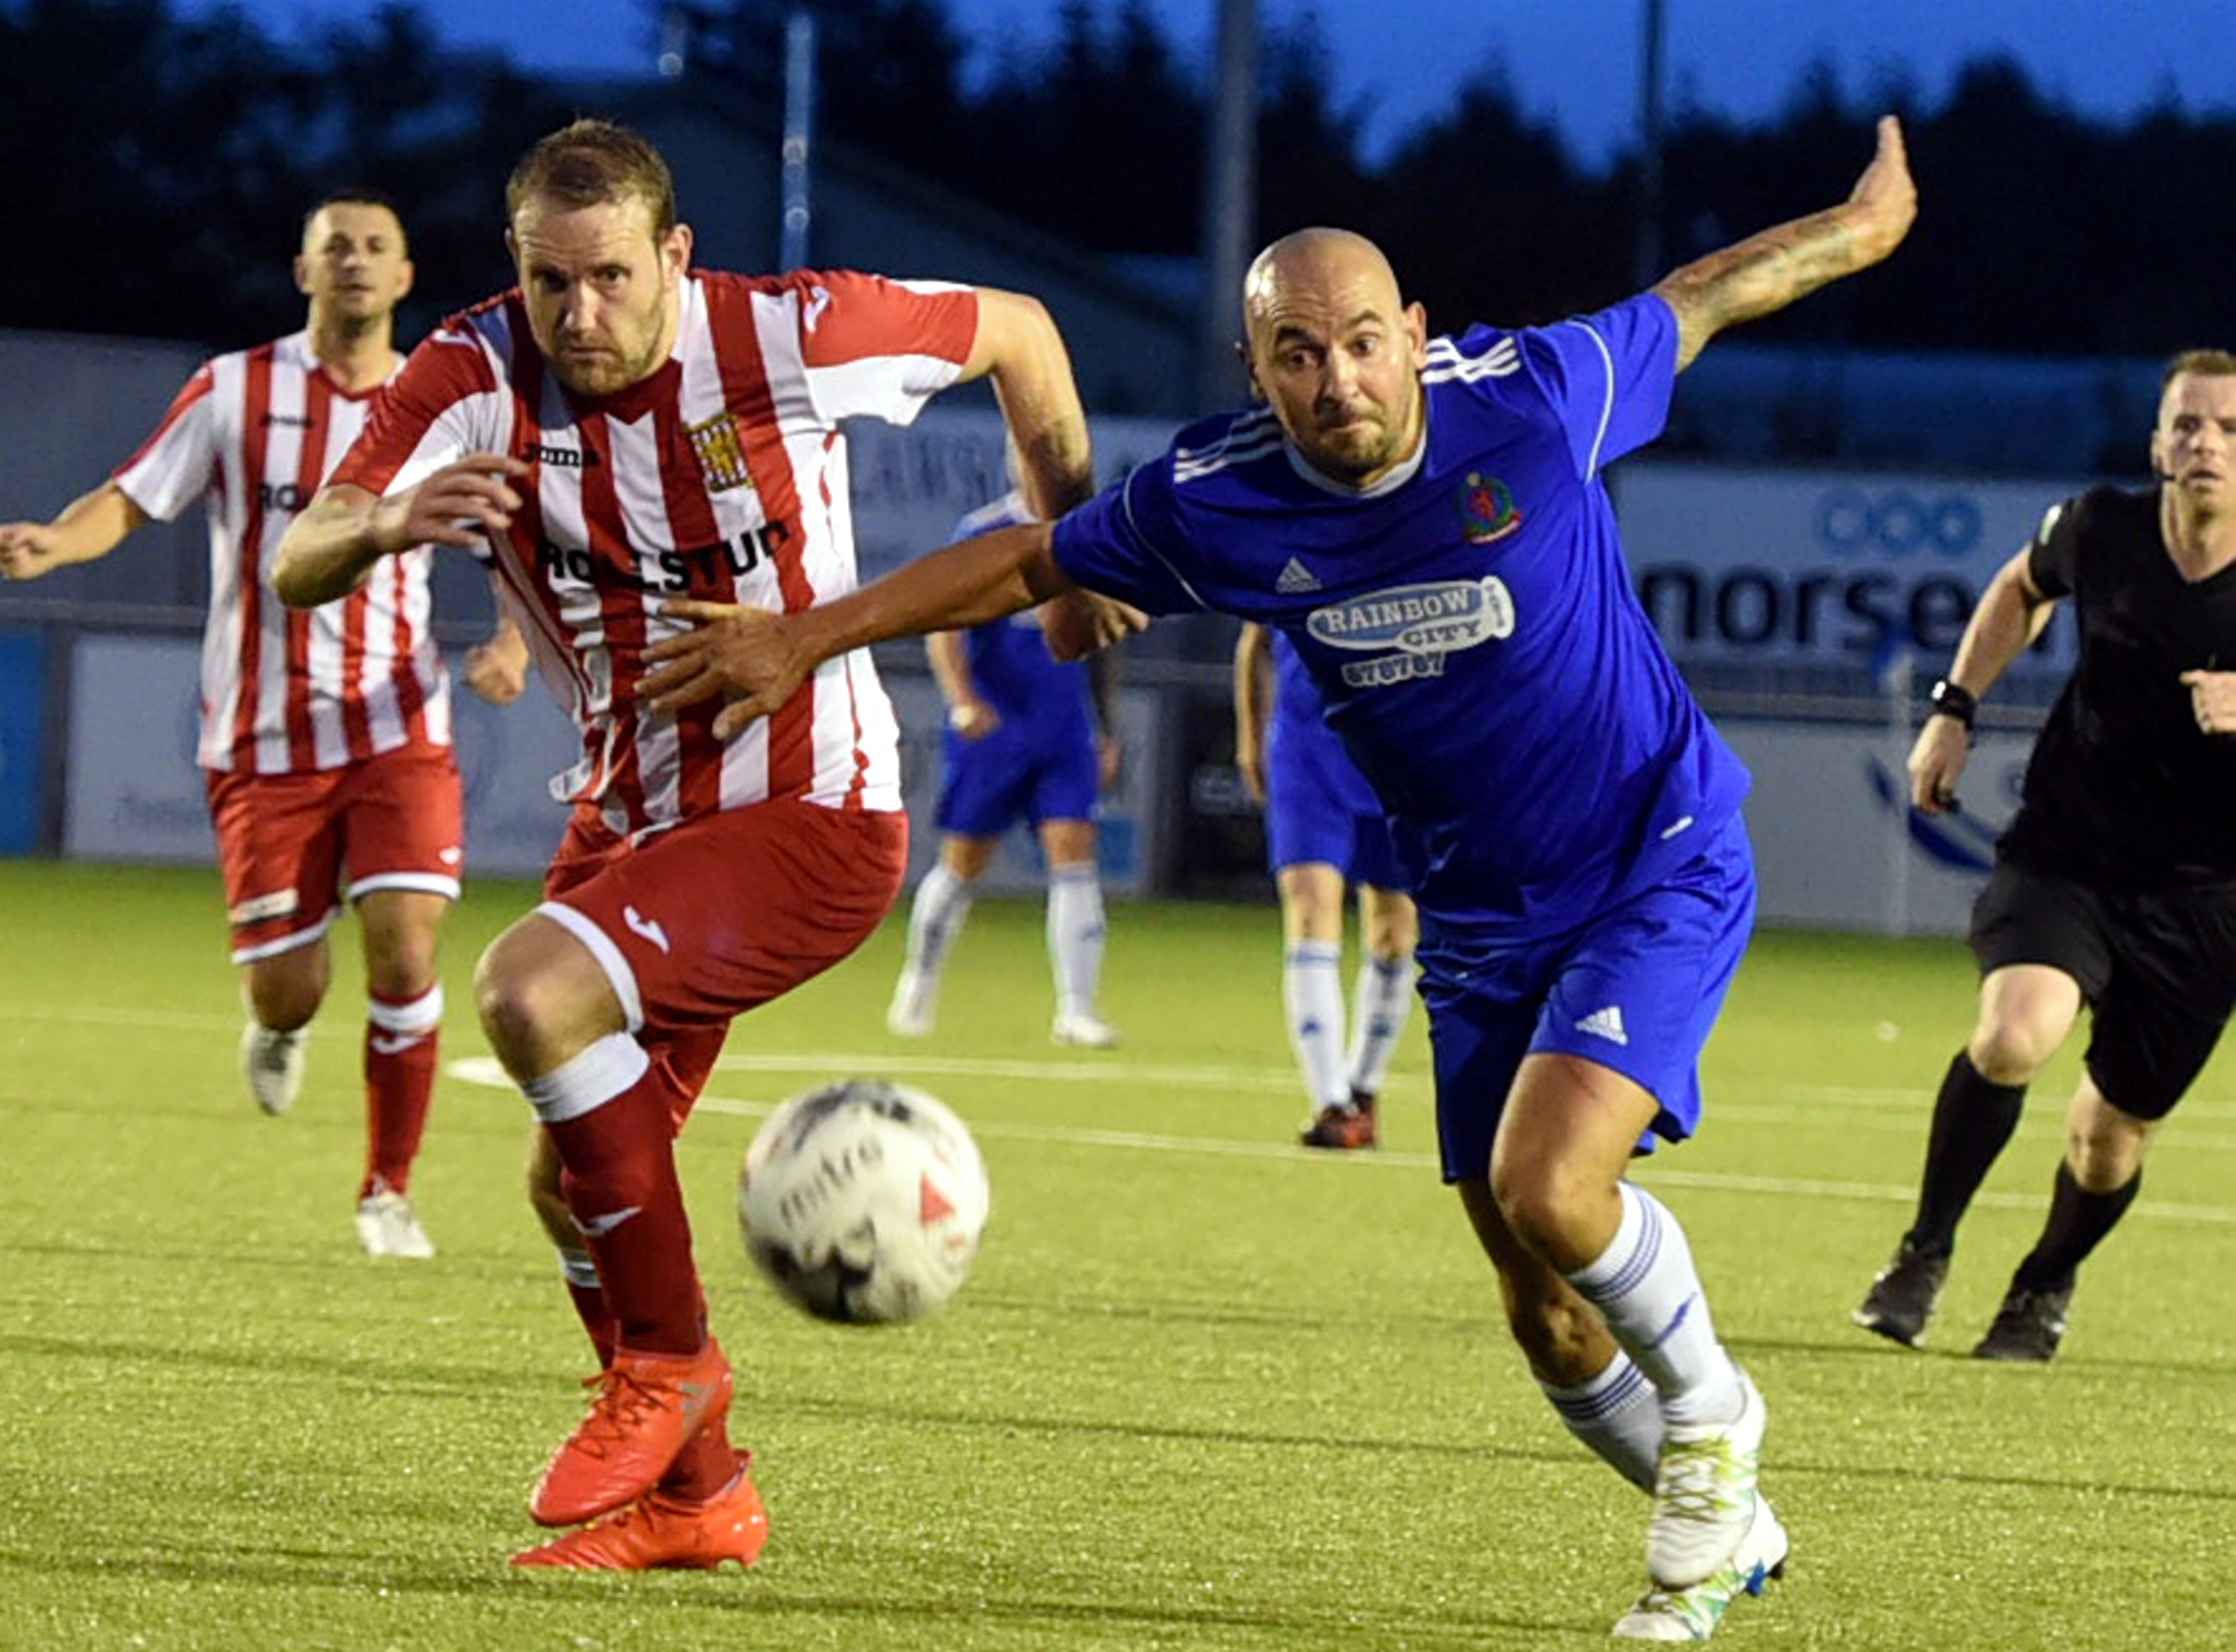 Garry Wood and Paul McManus tussle during the Cove Rangers v Formartine United tie.